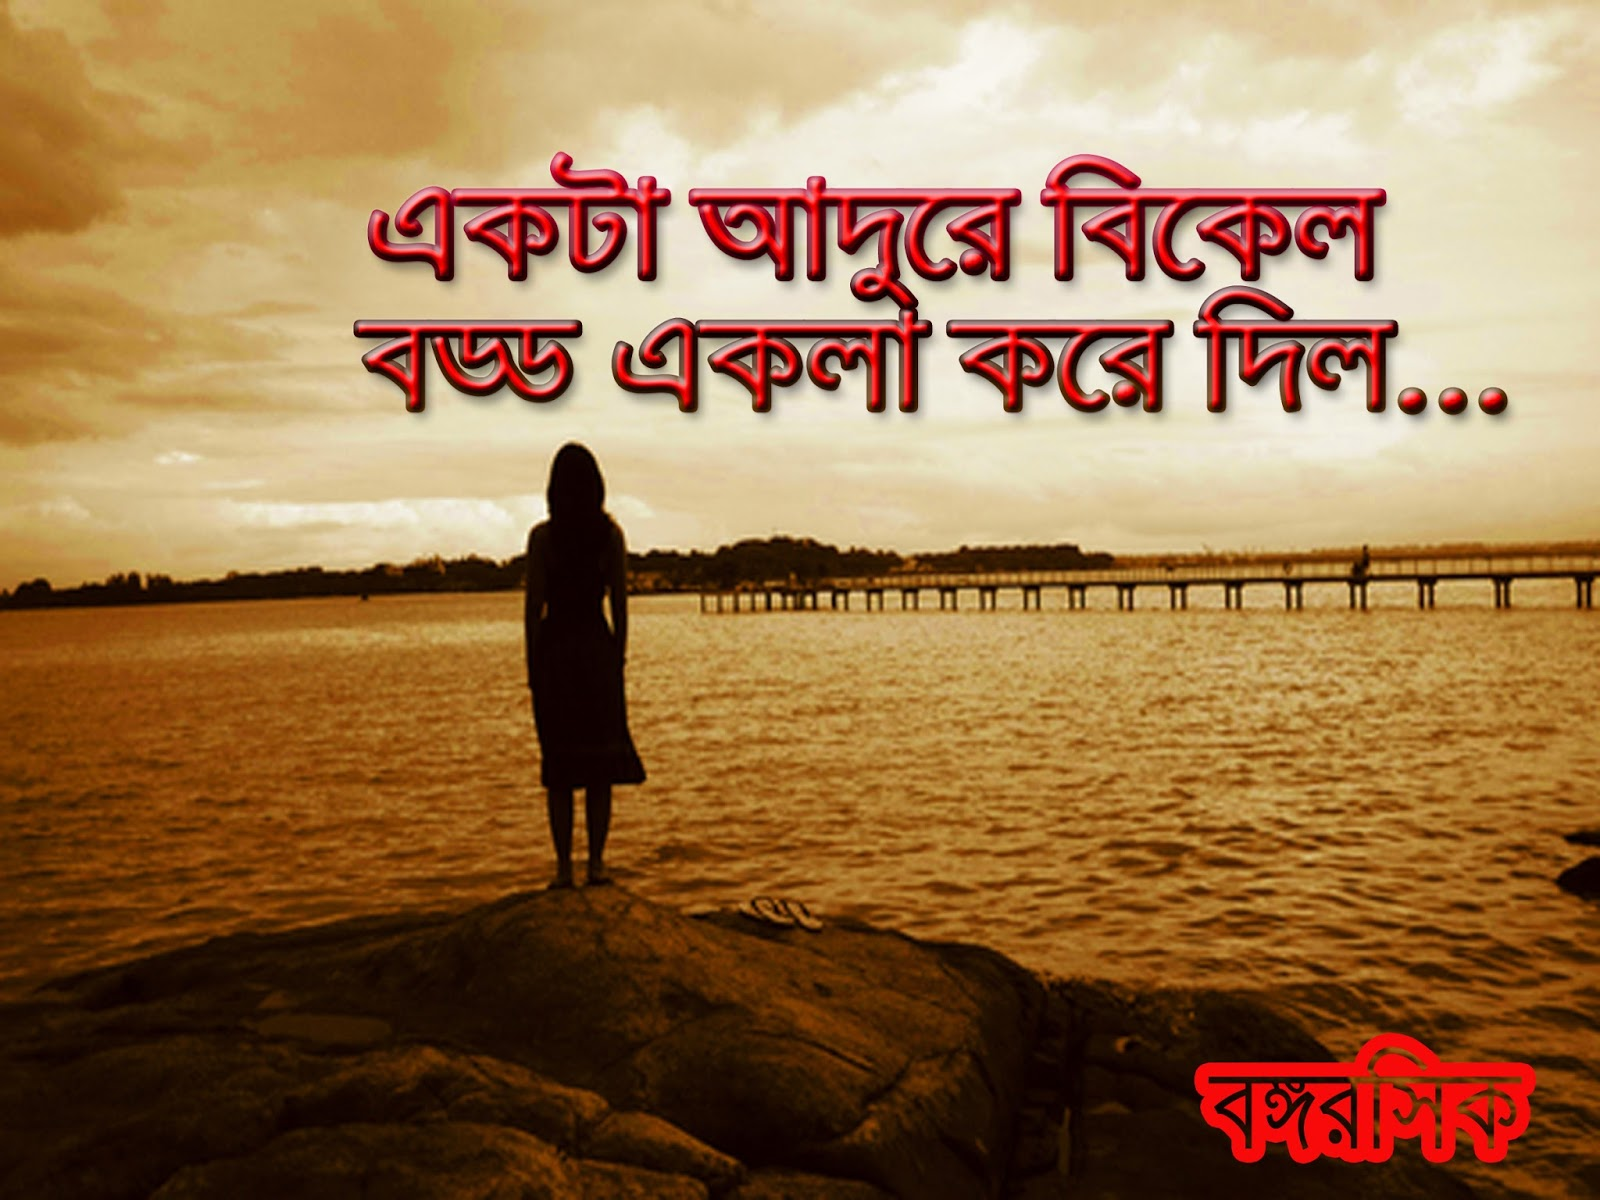 Bongorosik Bengali Quotes Bengali Jokes Bangla Kobita Adure